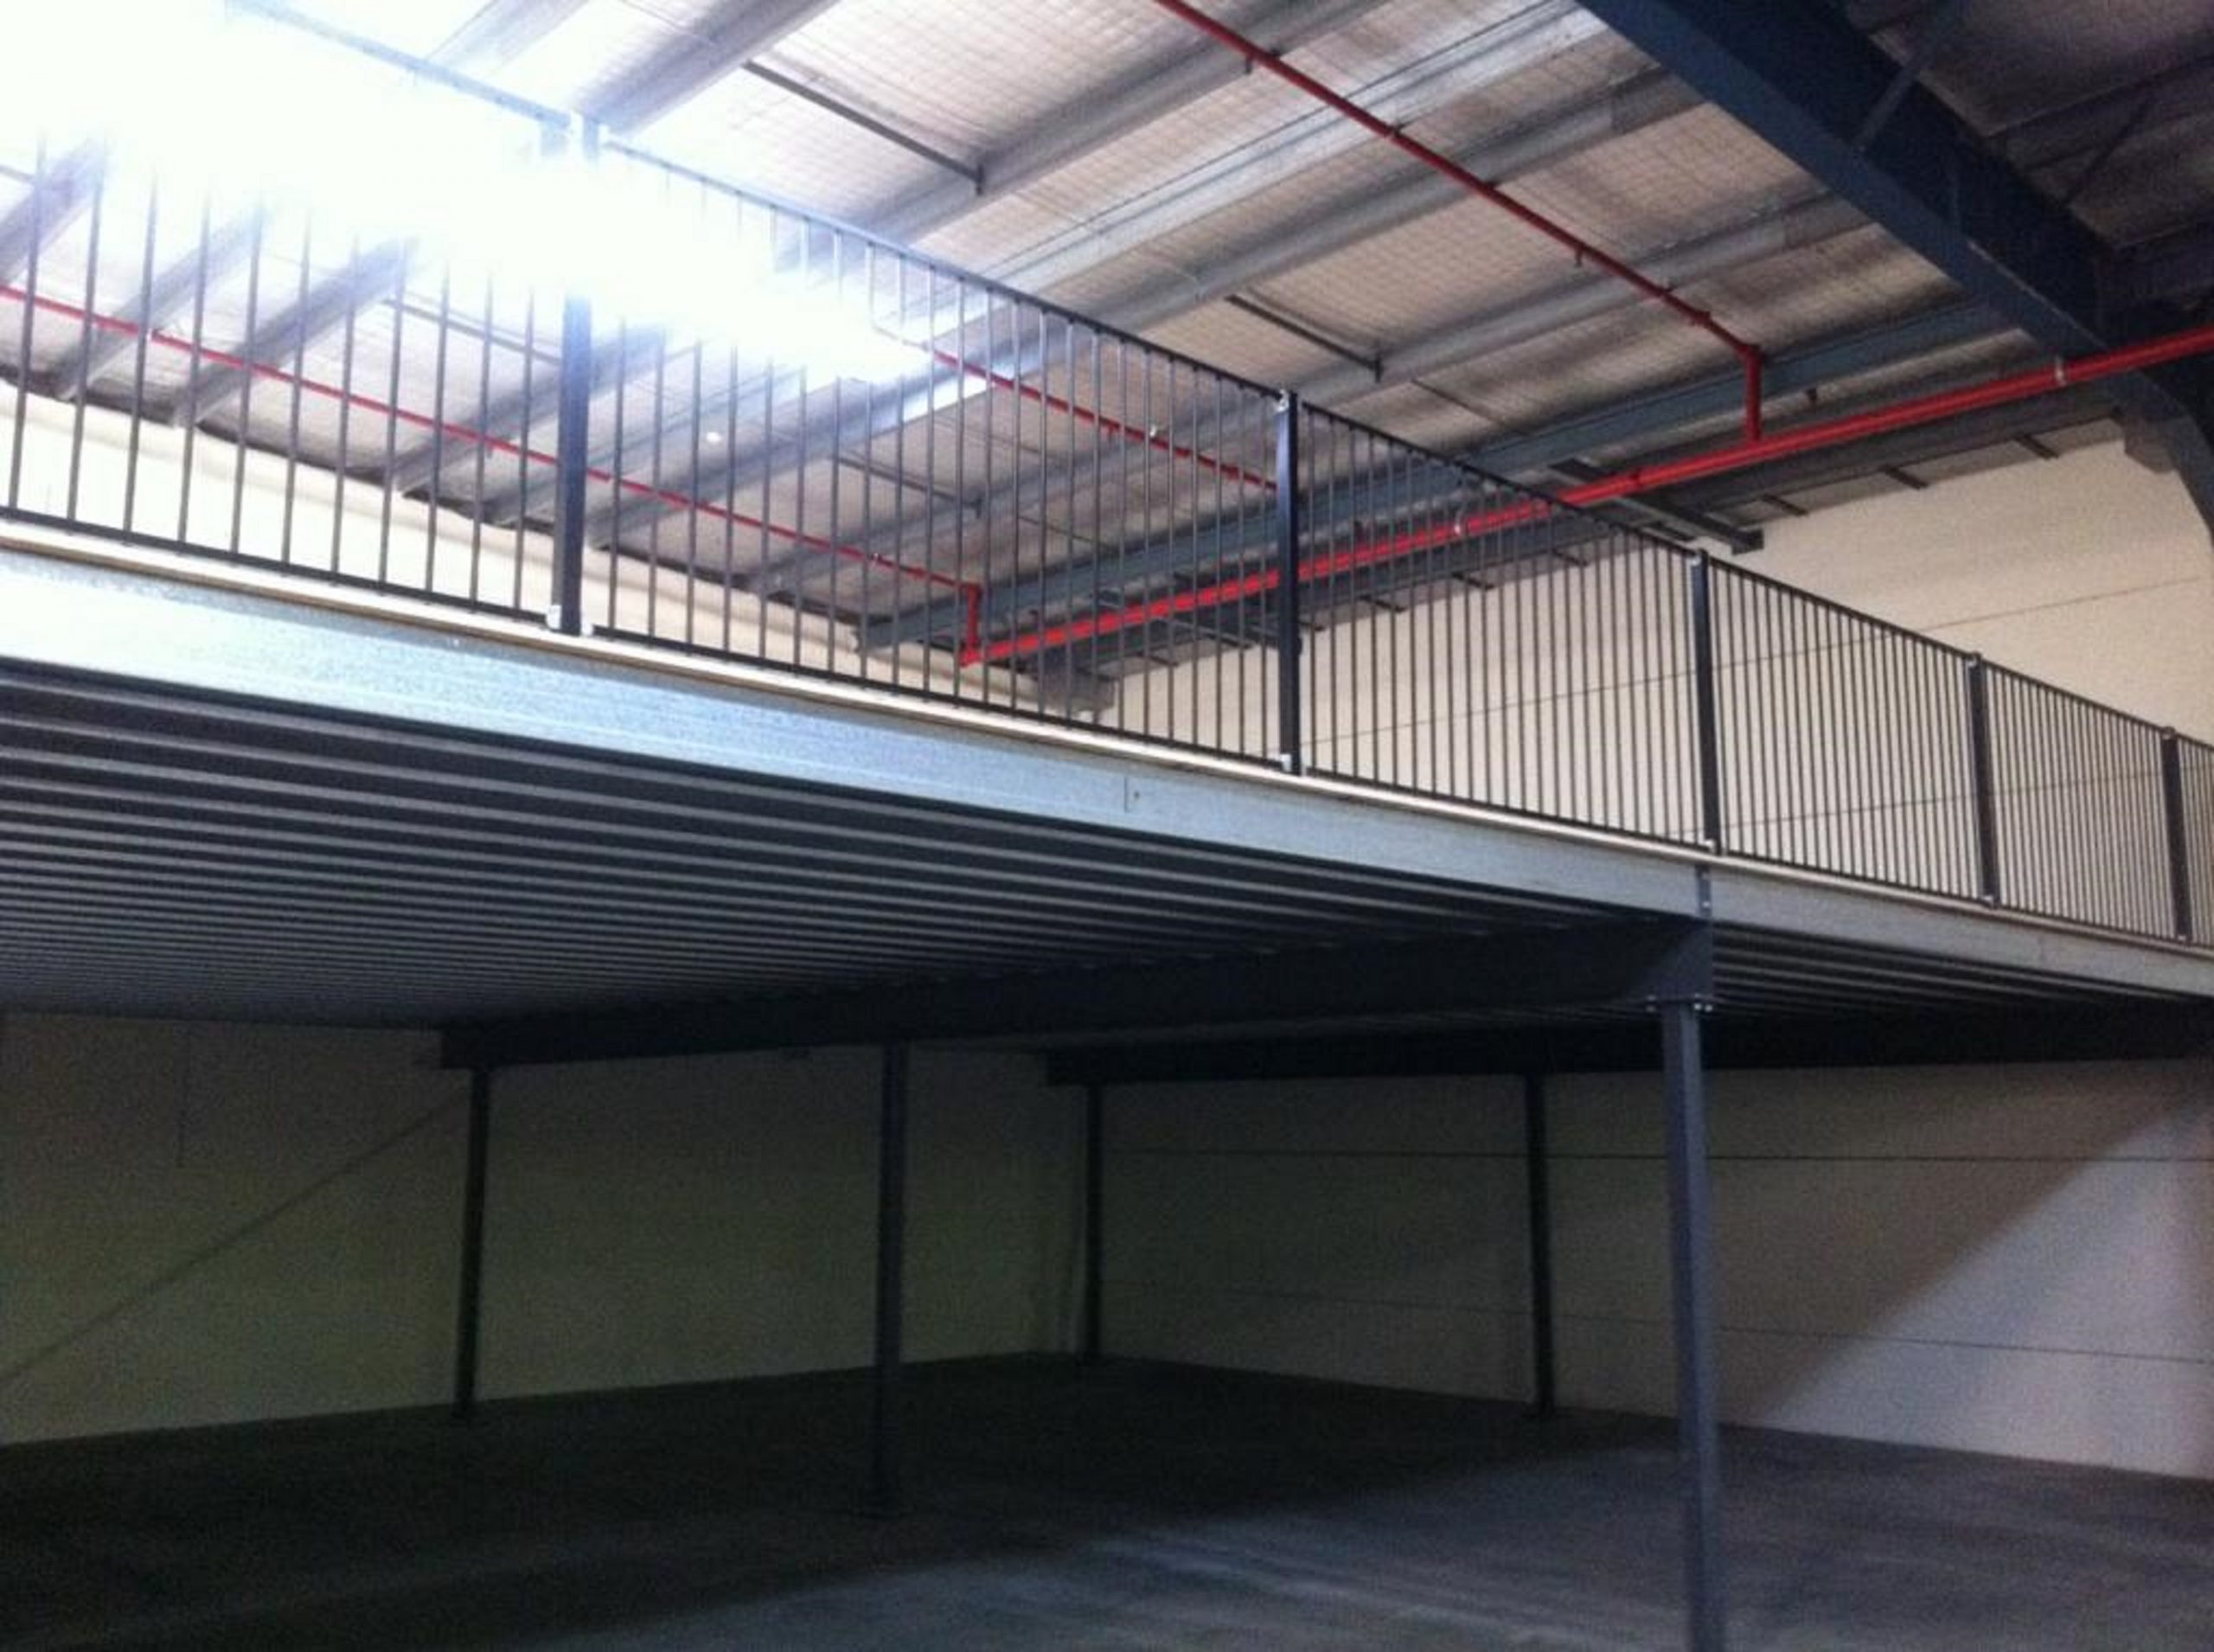 pallet racking and more mezzanine